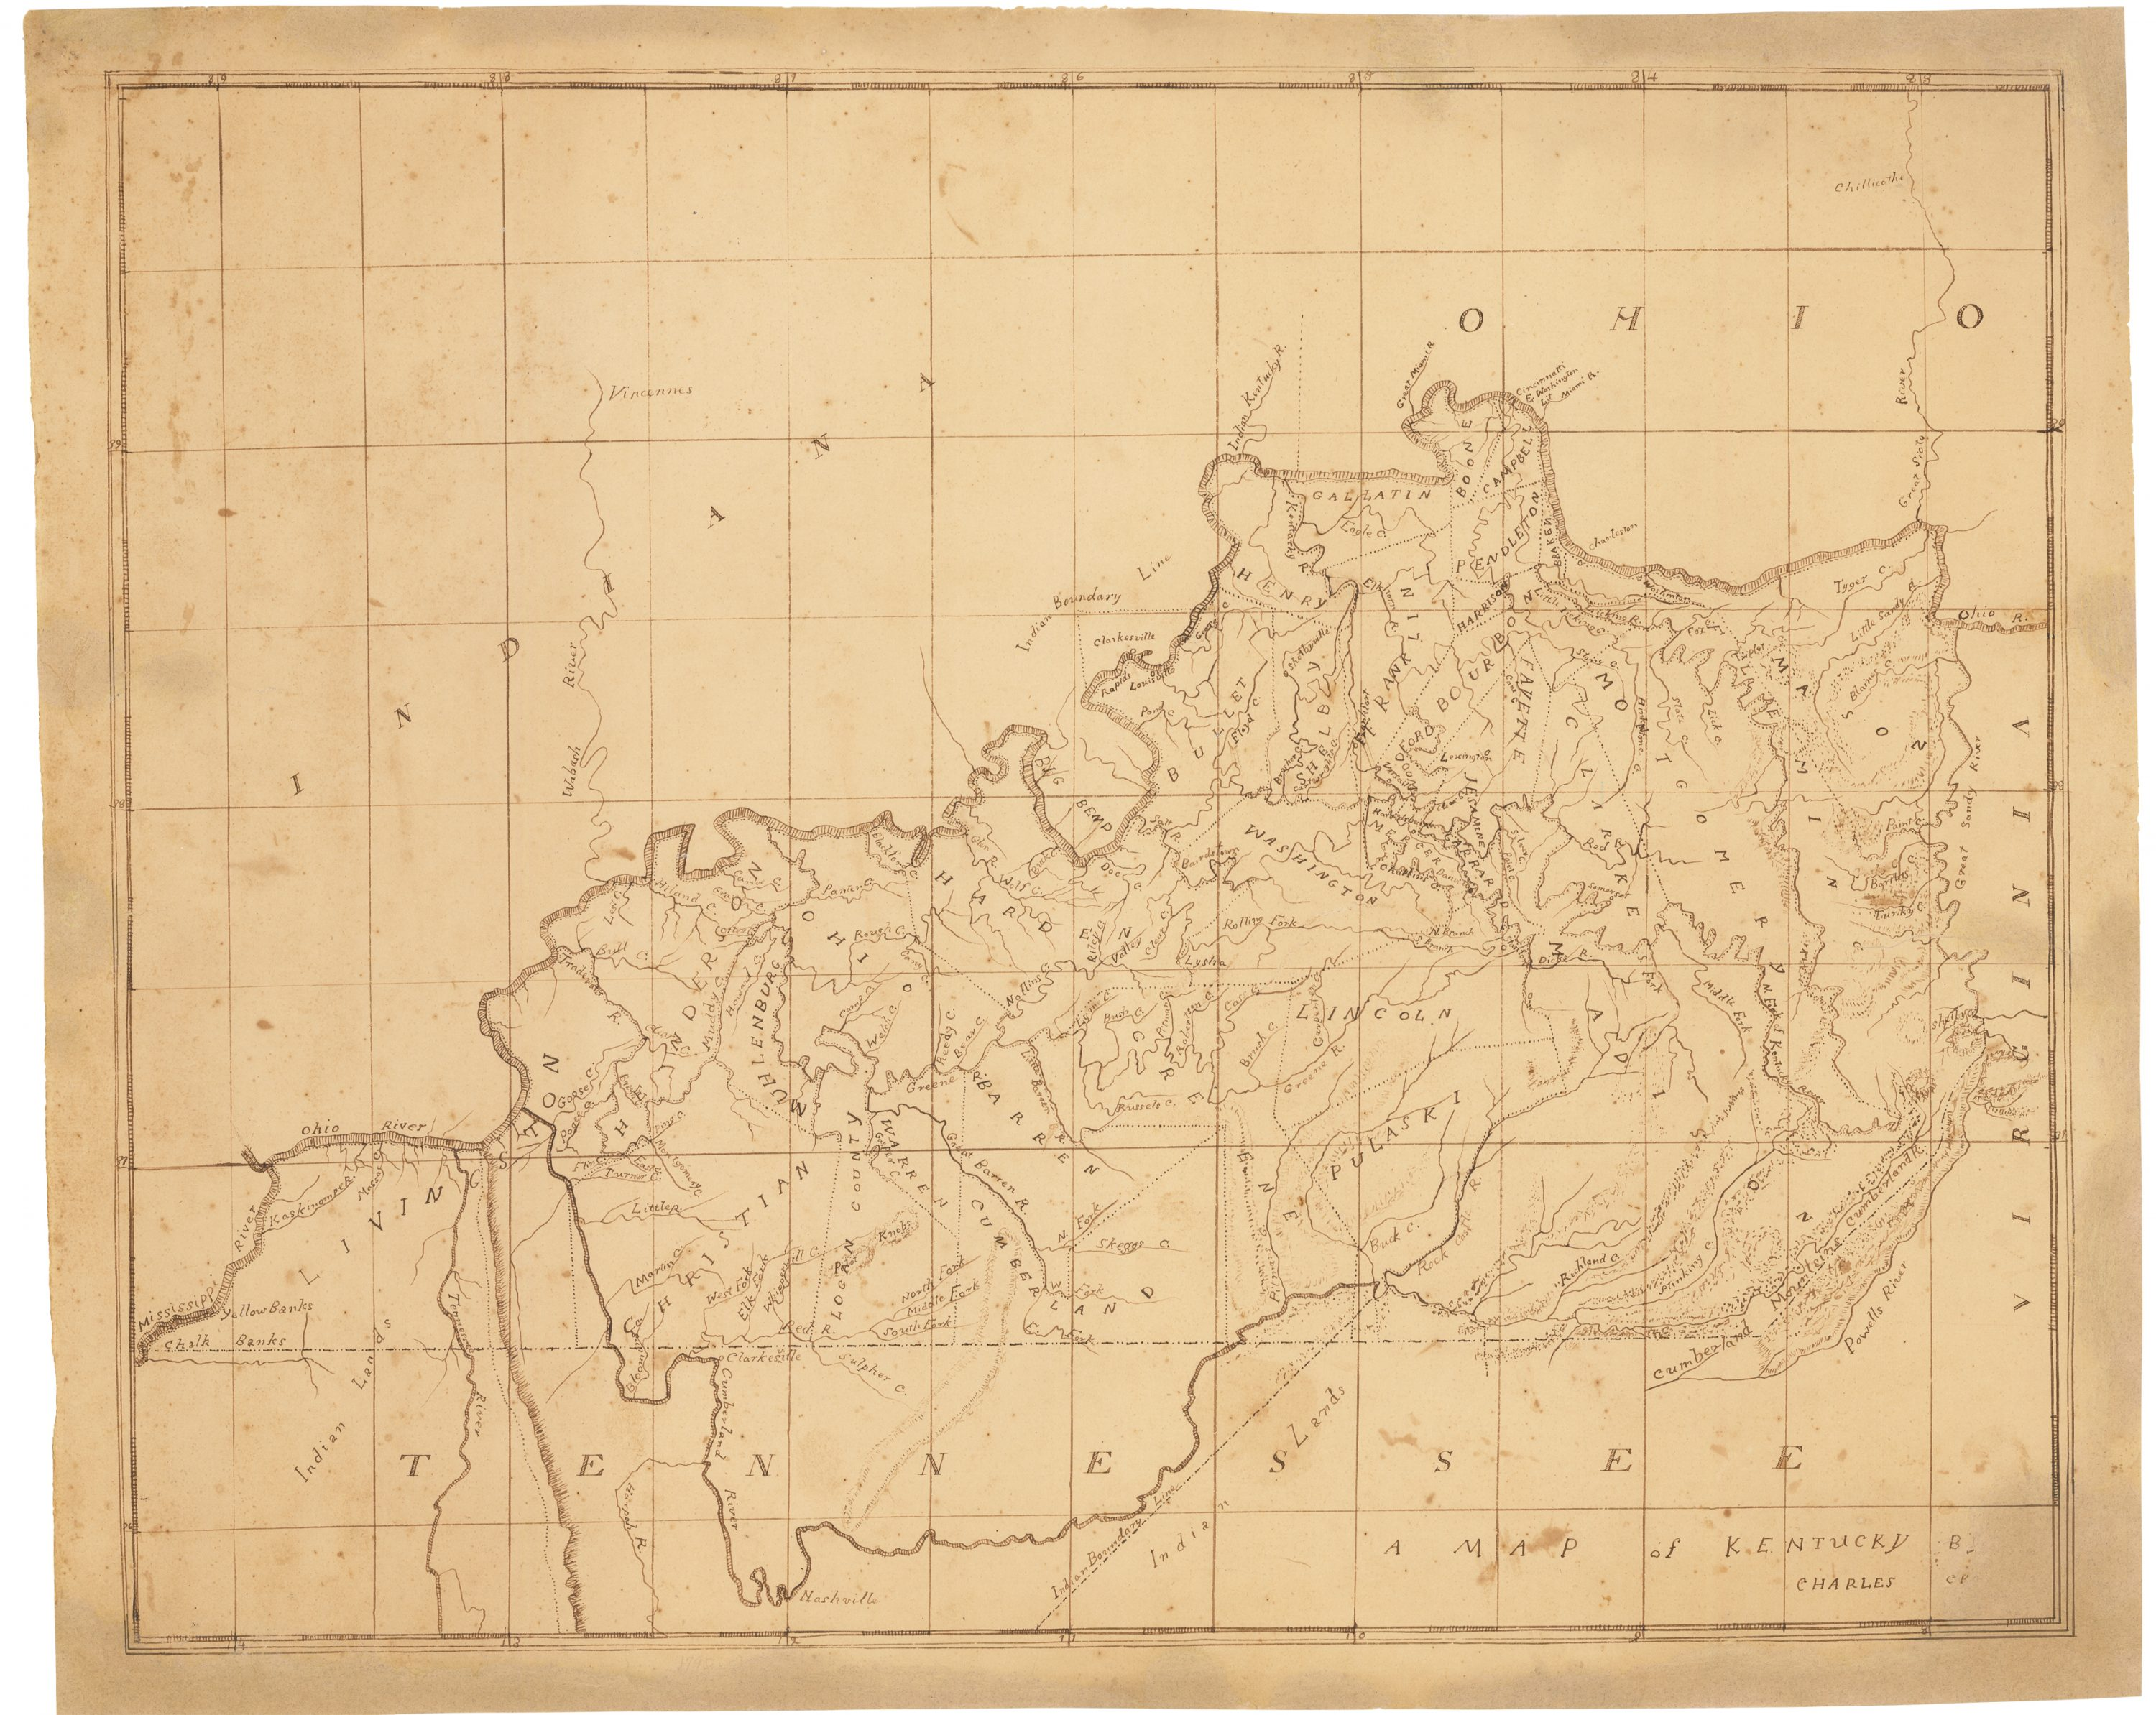 Five early 19th-century Kentucky school maps, drawn by members of one family